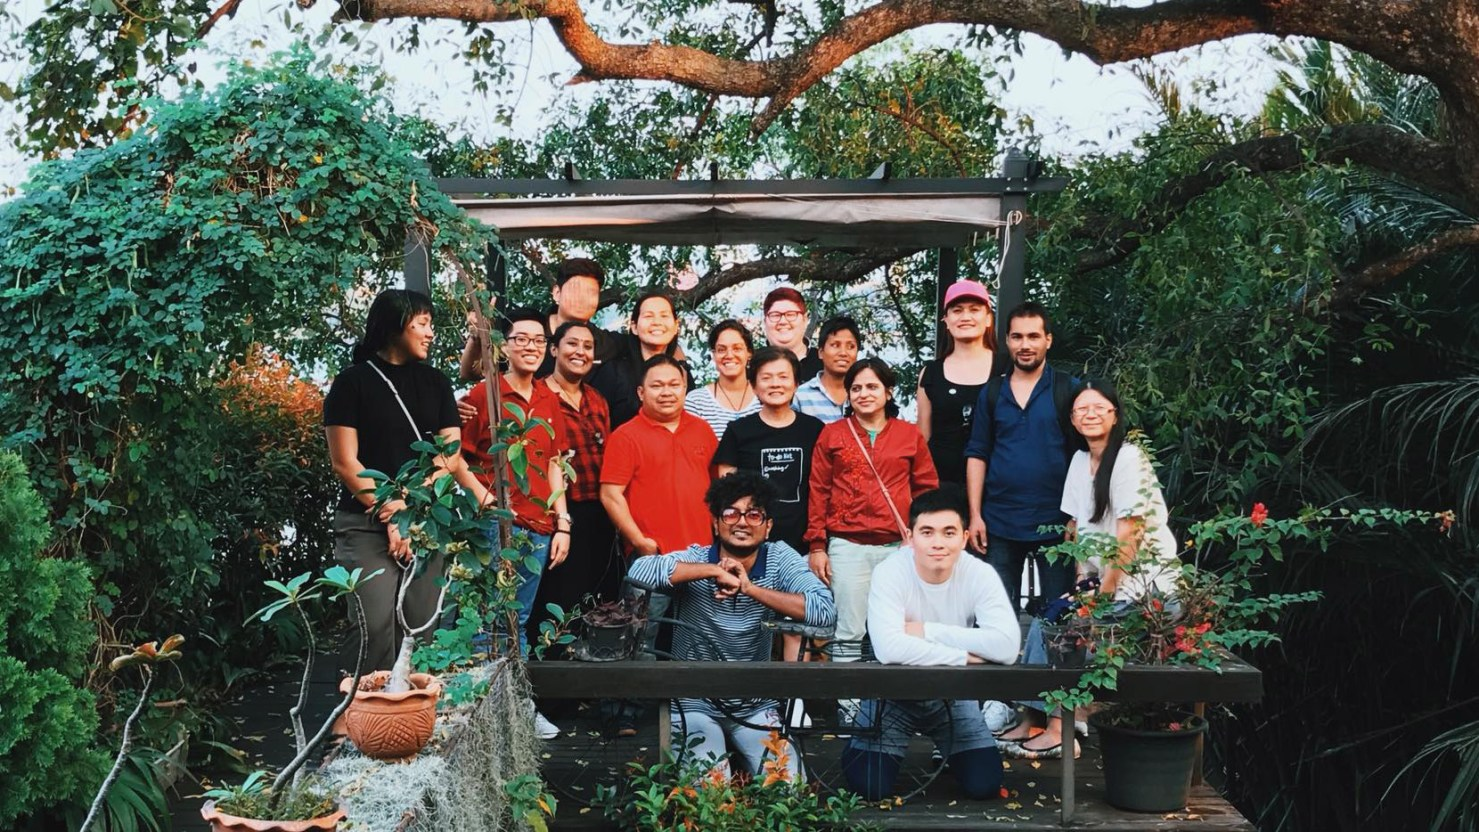 Attendees of the First Asian Intersex Forum (Between 8th and 11th February 2018). Photographer: unknown.